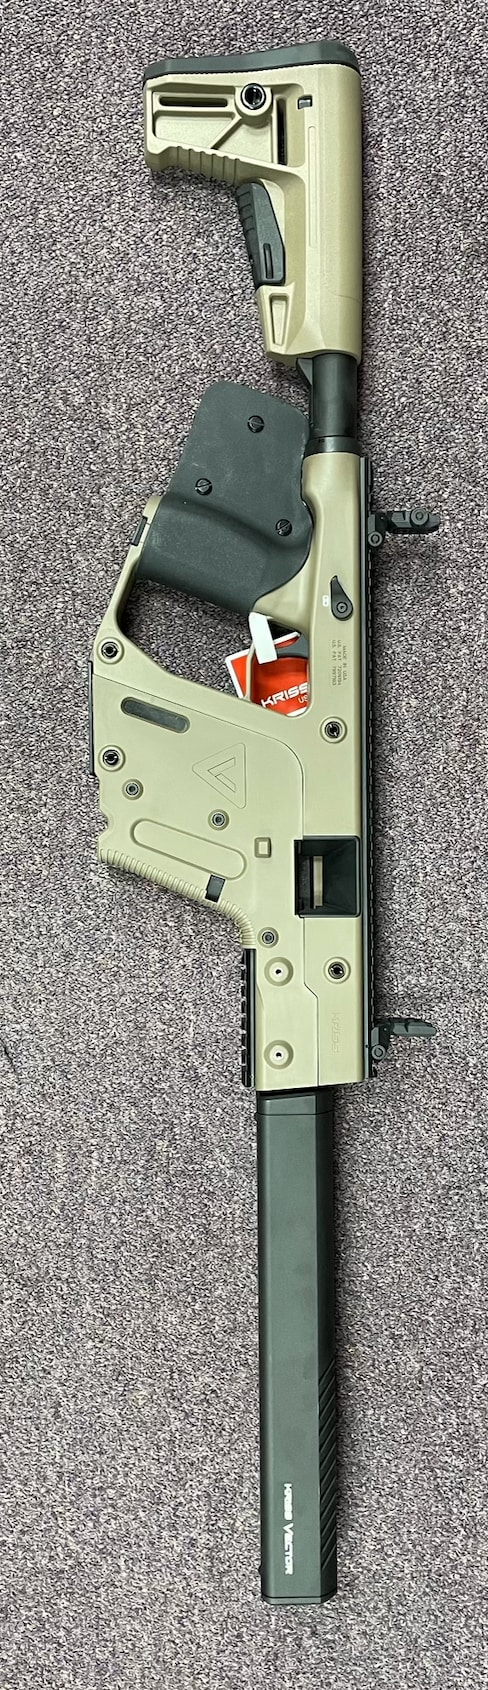 KRISS VECTOR special edition Featureless kriss vector rifle in 10mm